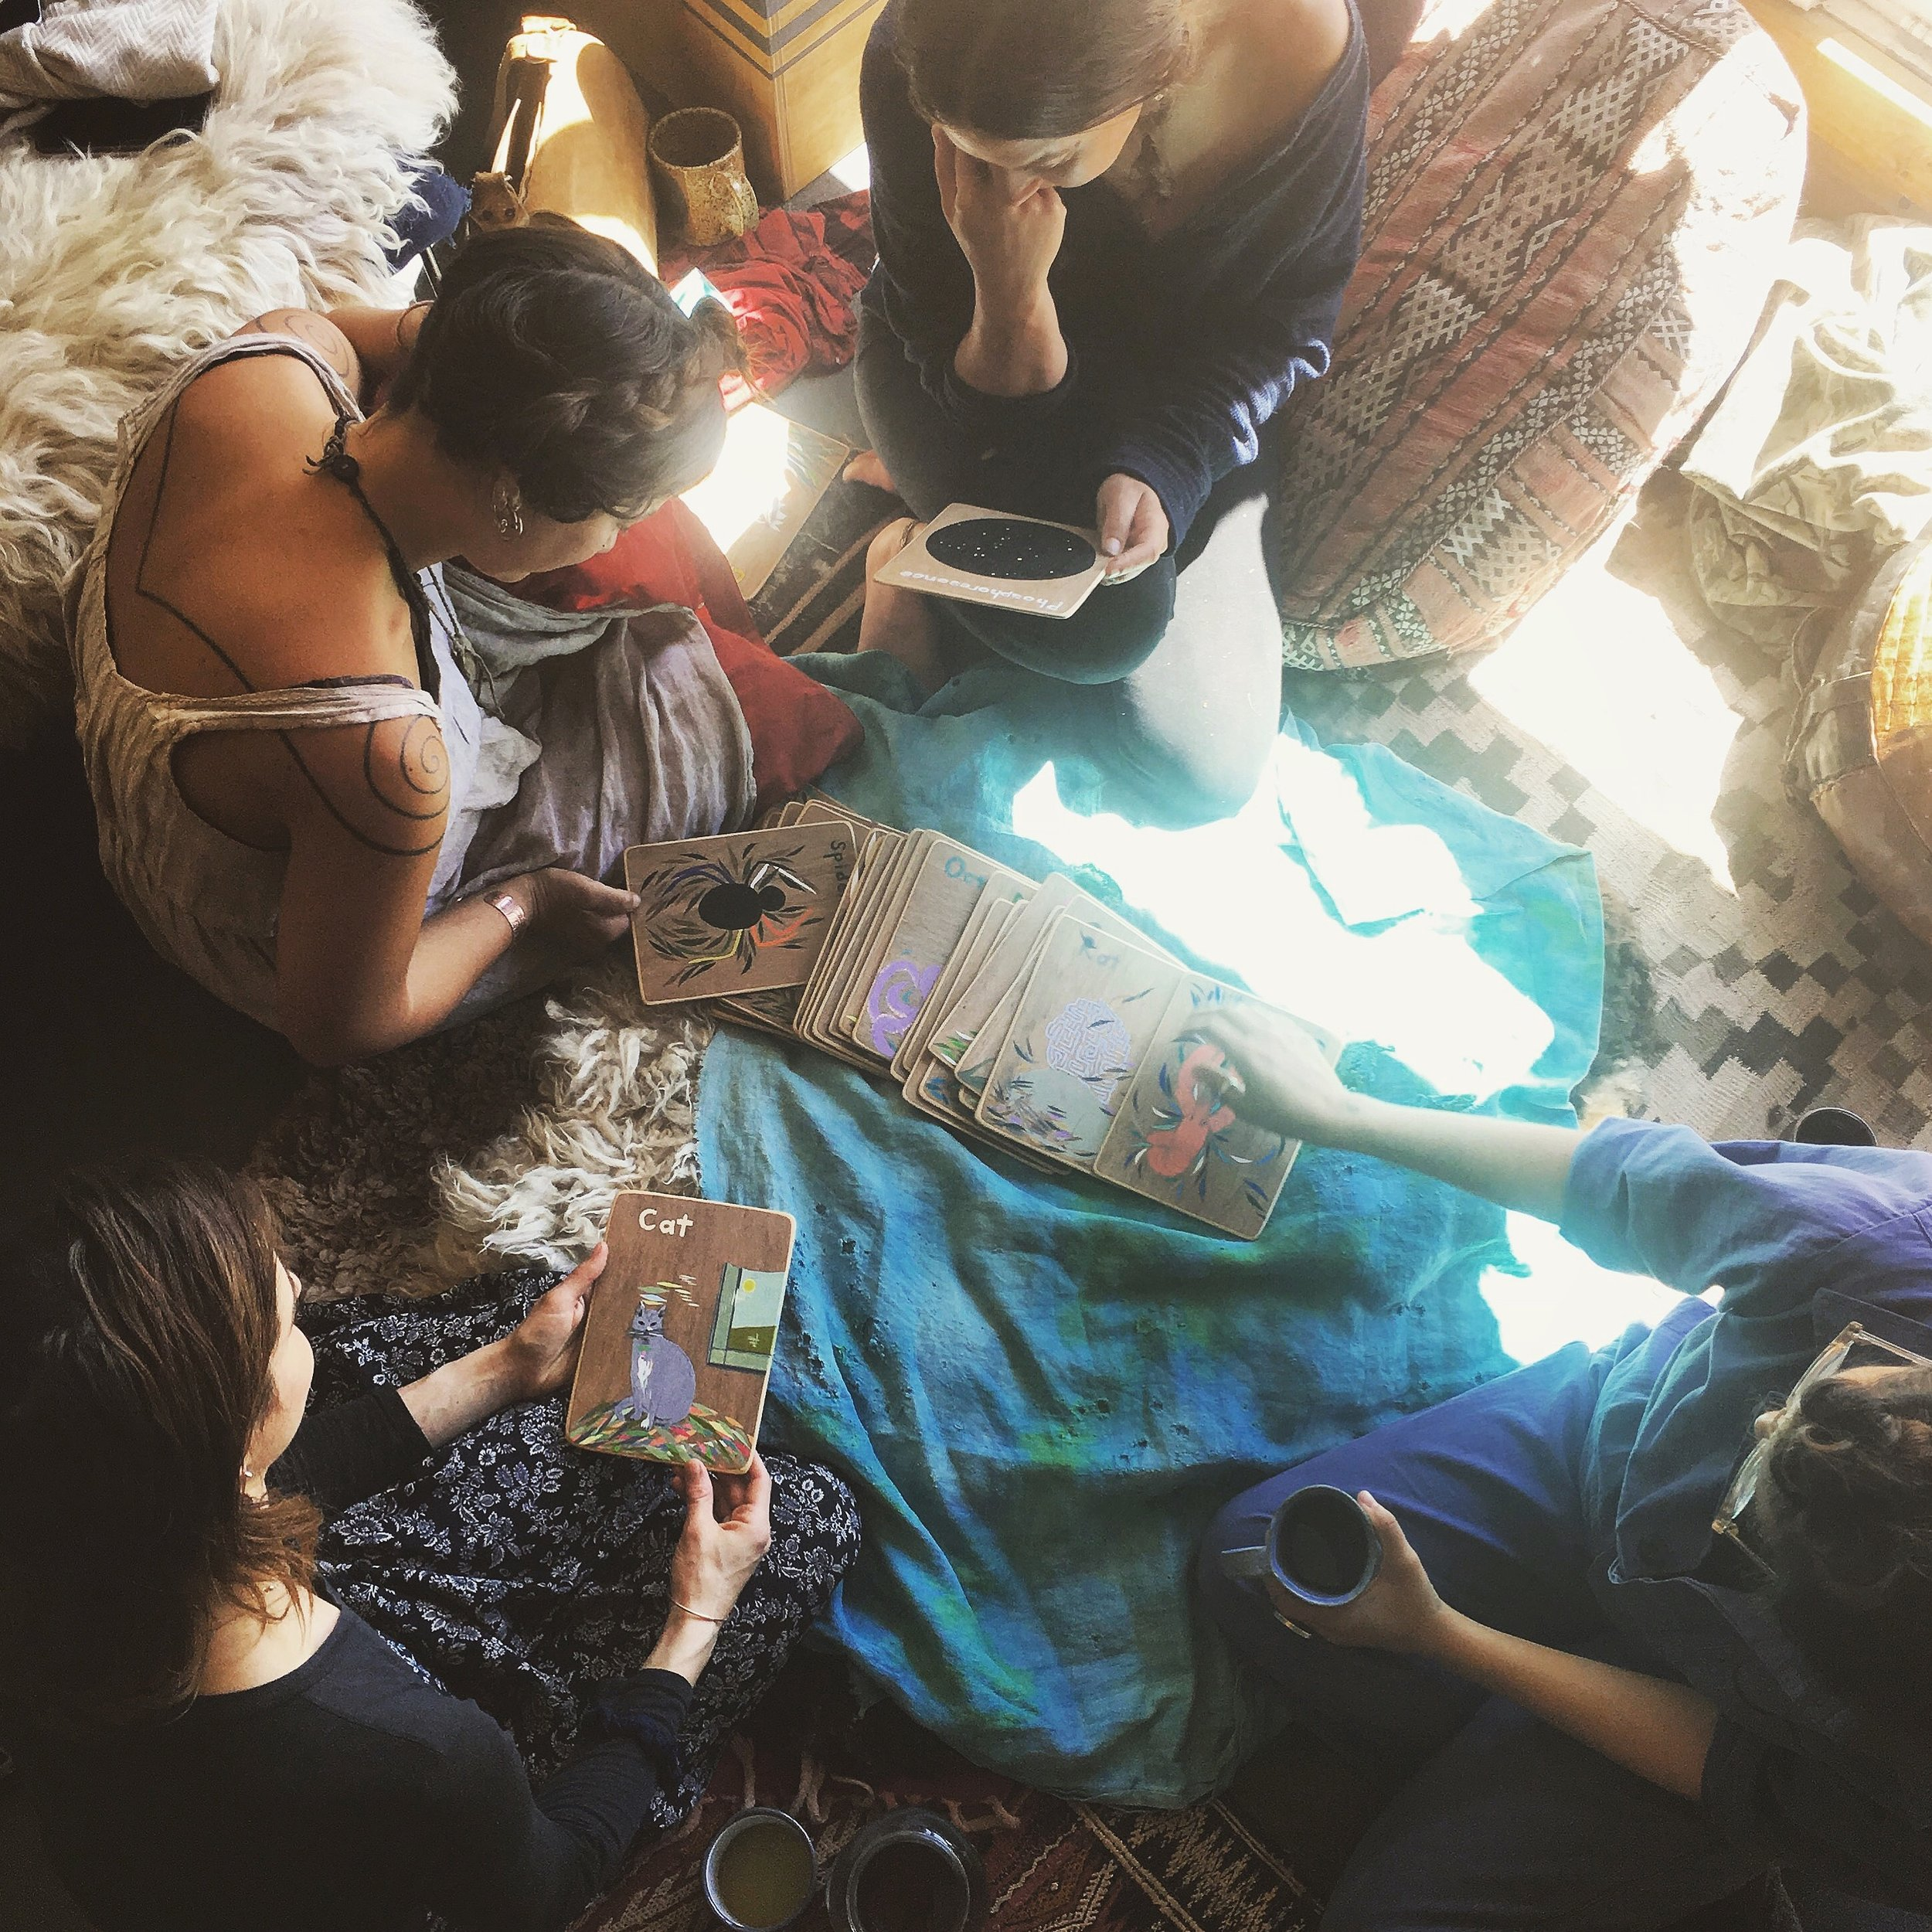 Morning moments drawing Animal Medicine Cards with friends. photo by Adriana Atema